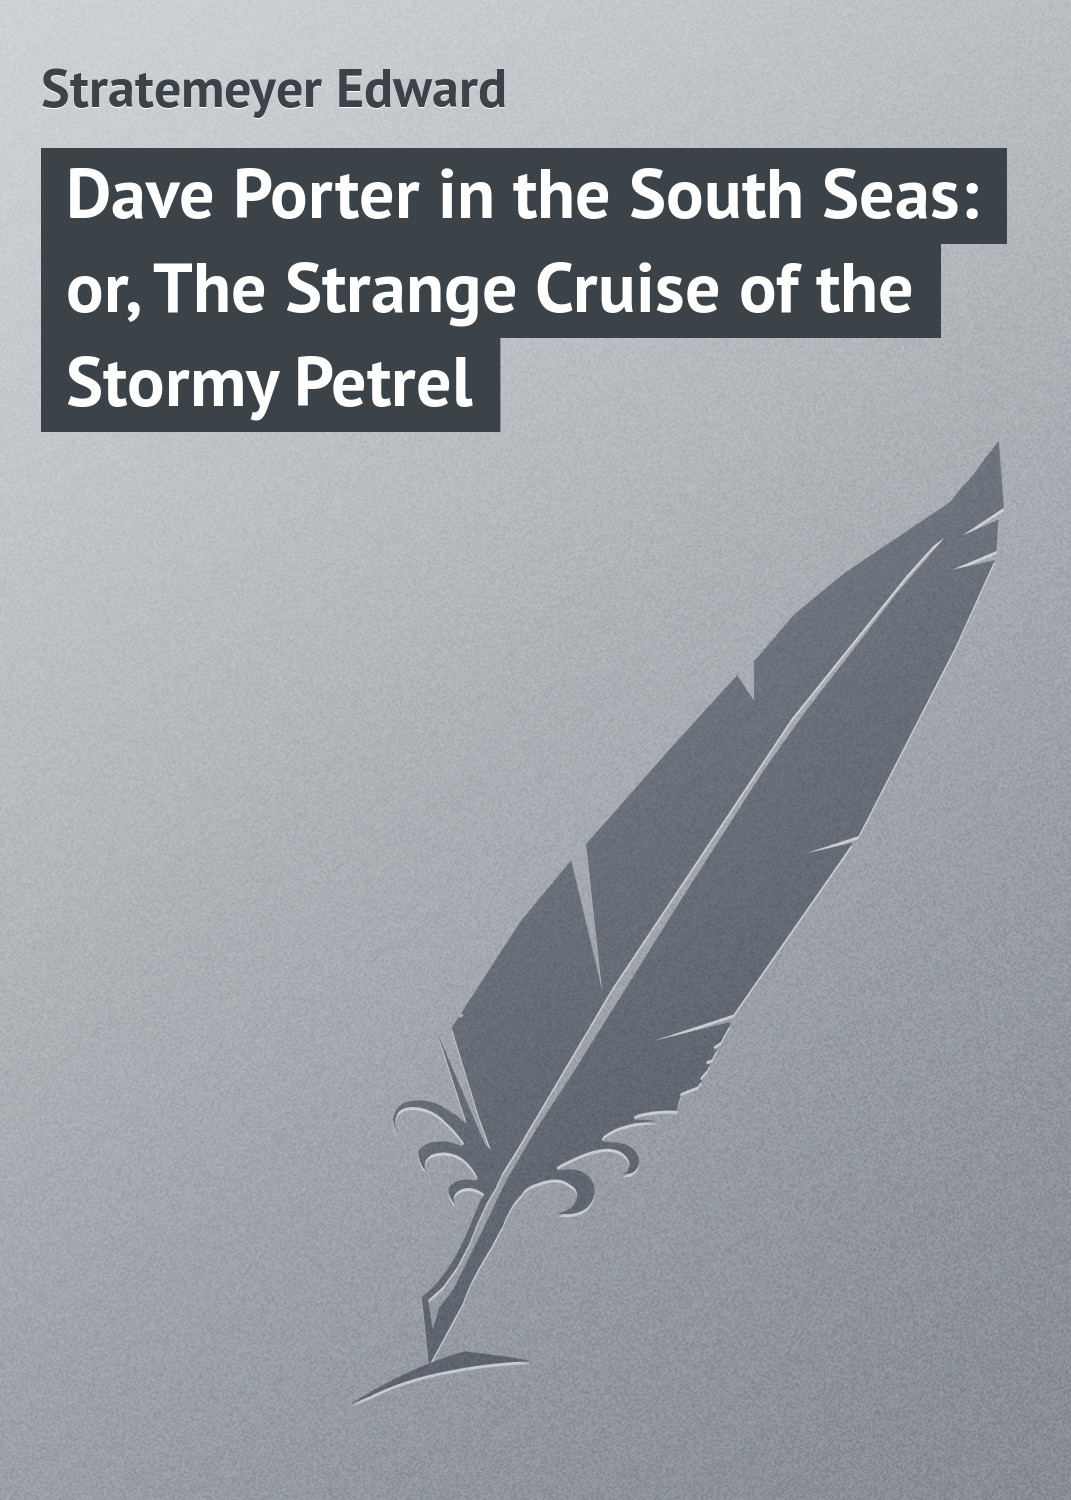 Stratemeyer Edward Dave Porter in the South Seas: or, The Strange Cruise of the Stormy Petrel